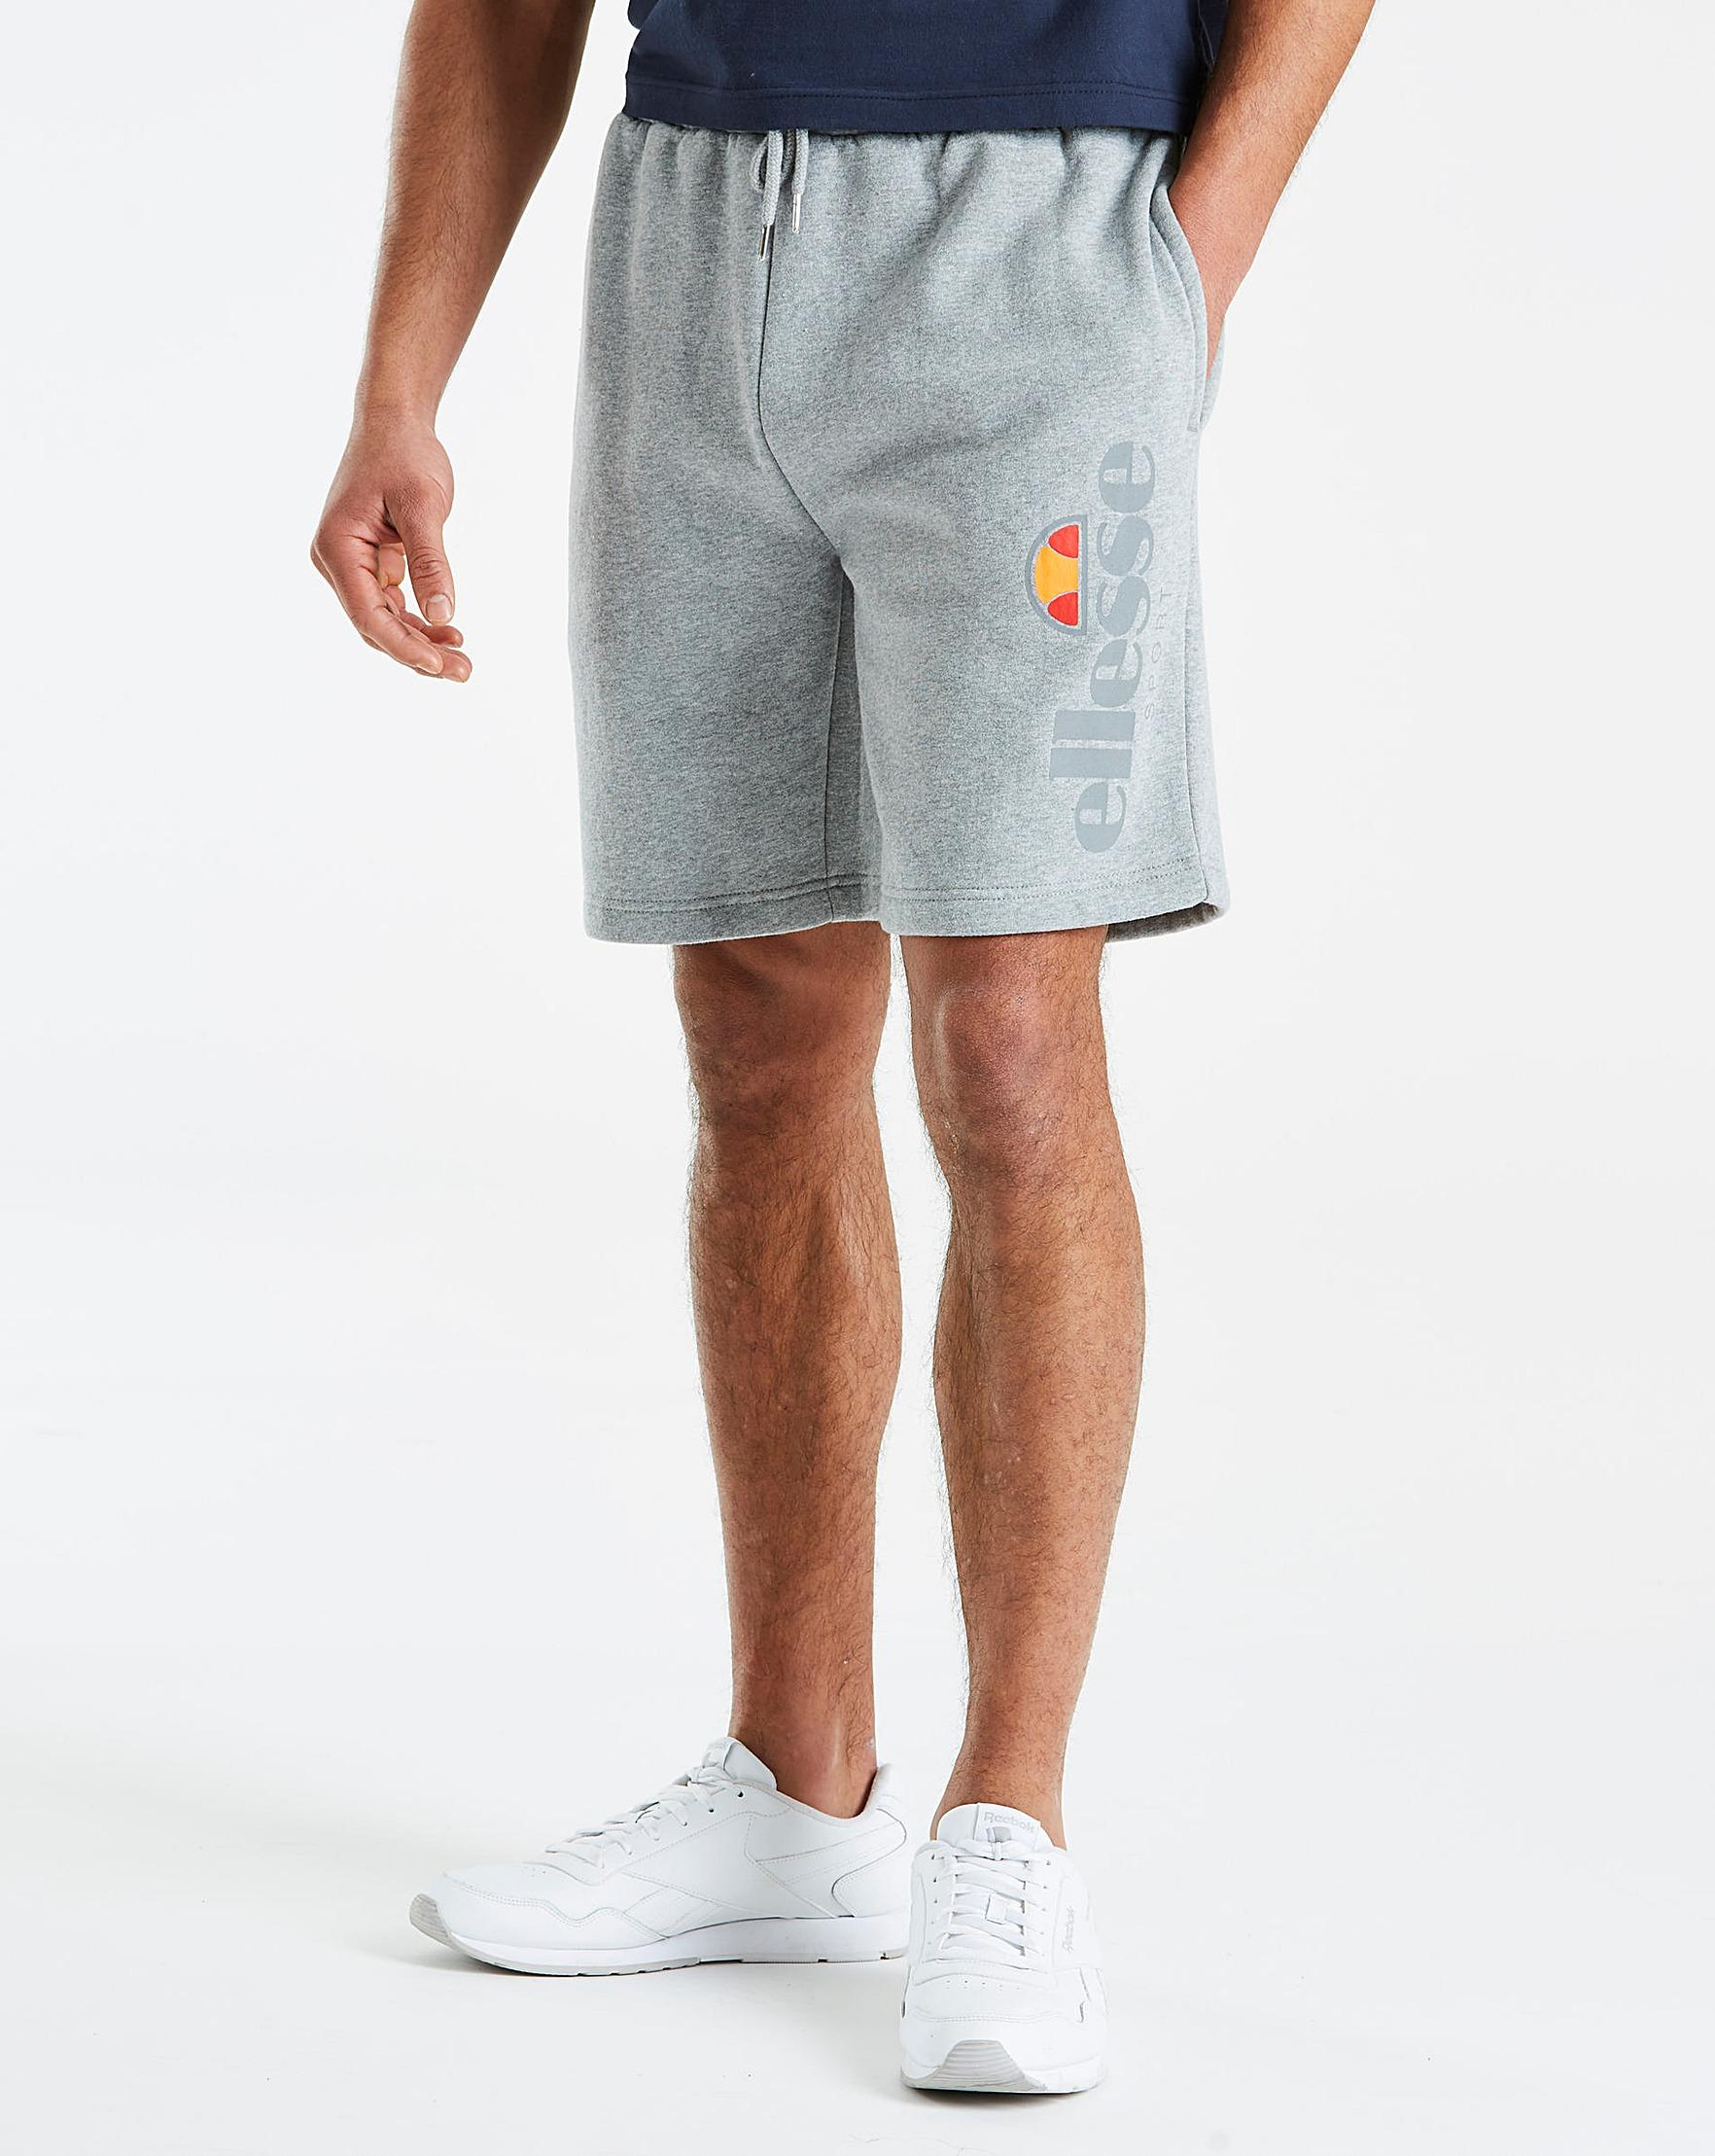 a73b81f8941cd Ellesse Grey Todento Jog Shorts in Gray for Men - Lyst